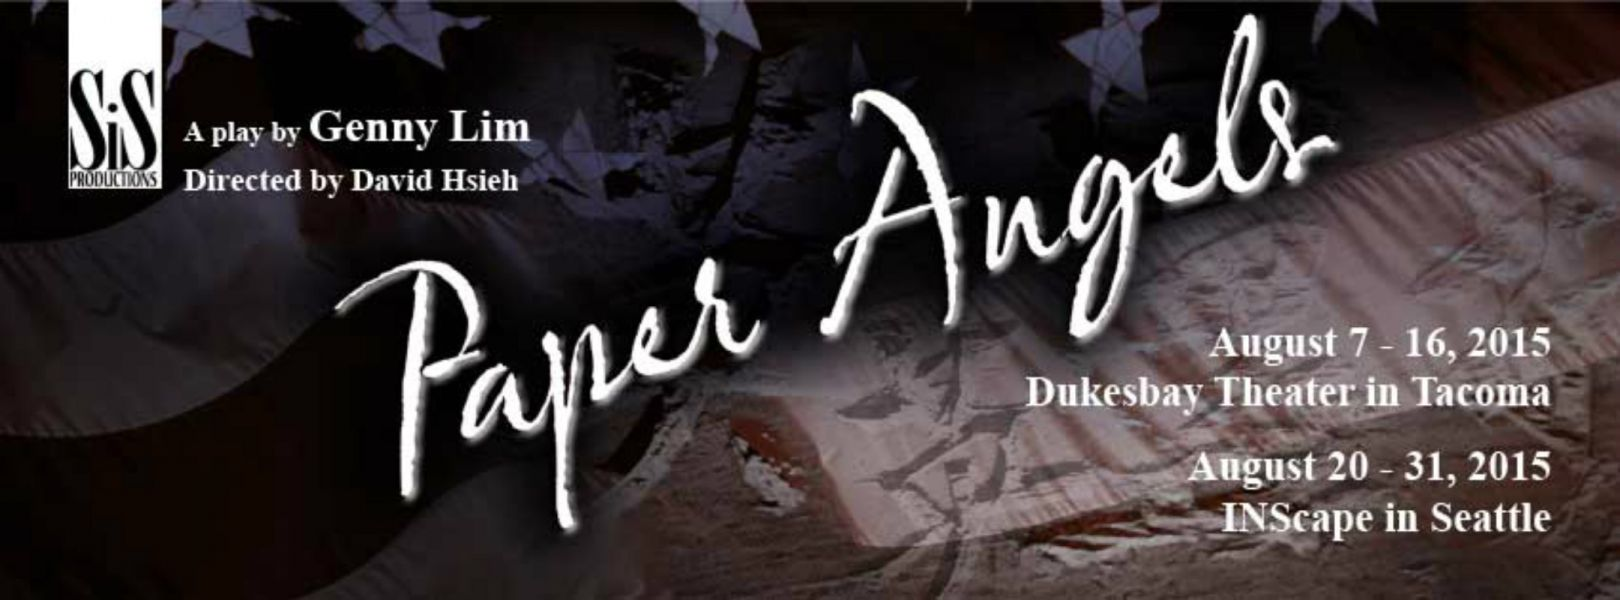 """SIS Productions presents """"Paper Angels"""" Aug. 6-17 at Dukesbay Theater in Tacoma"""